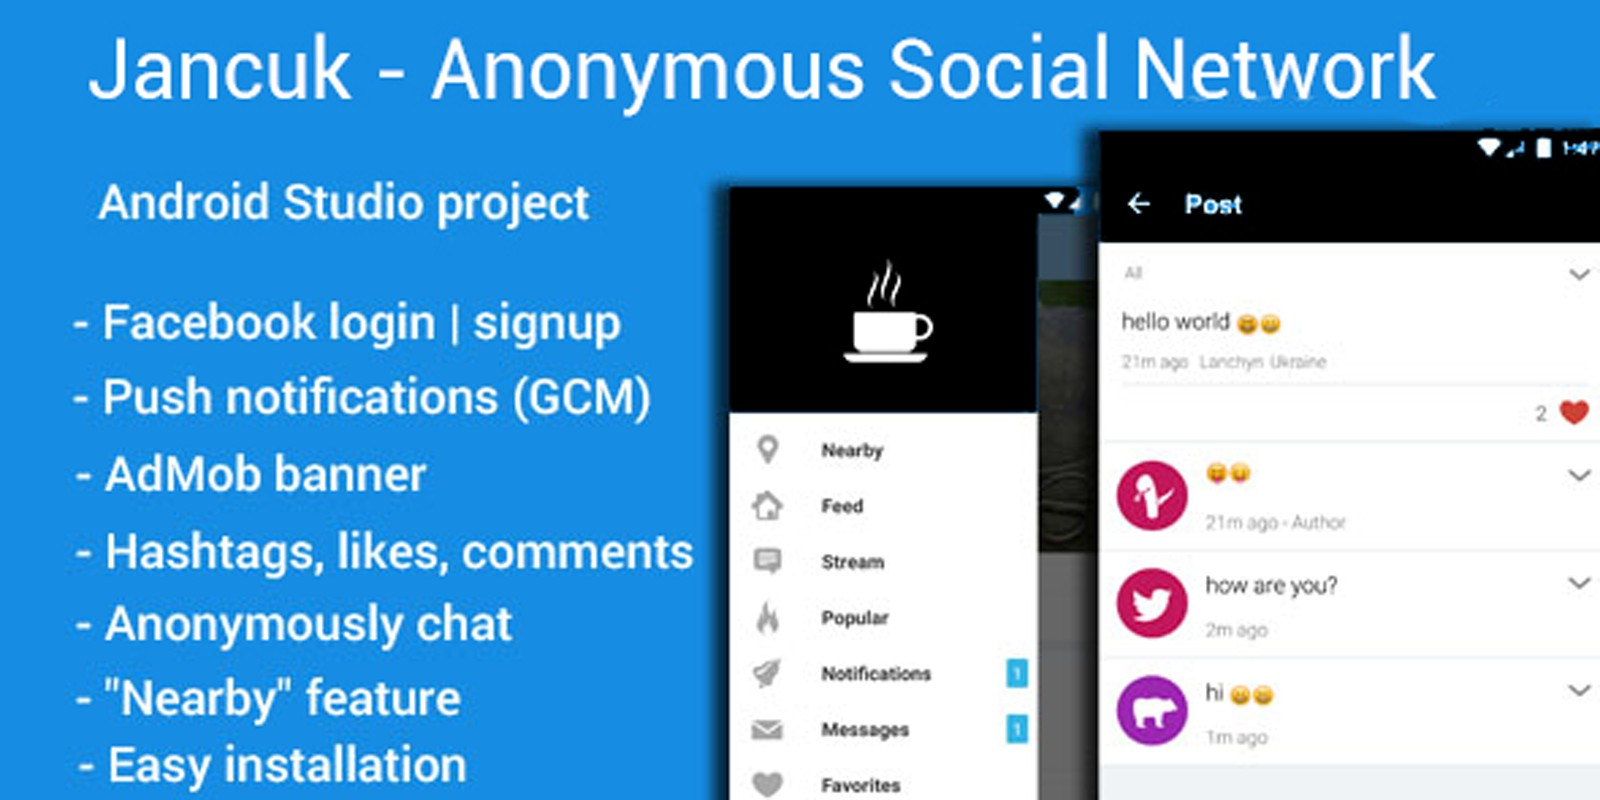 Jancuk - Anonymous Social Network Android